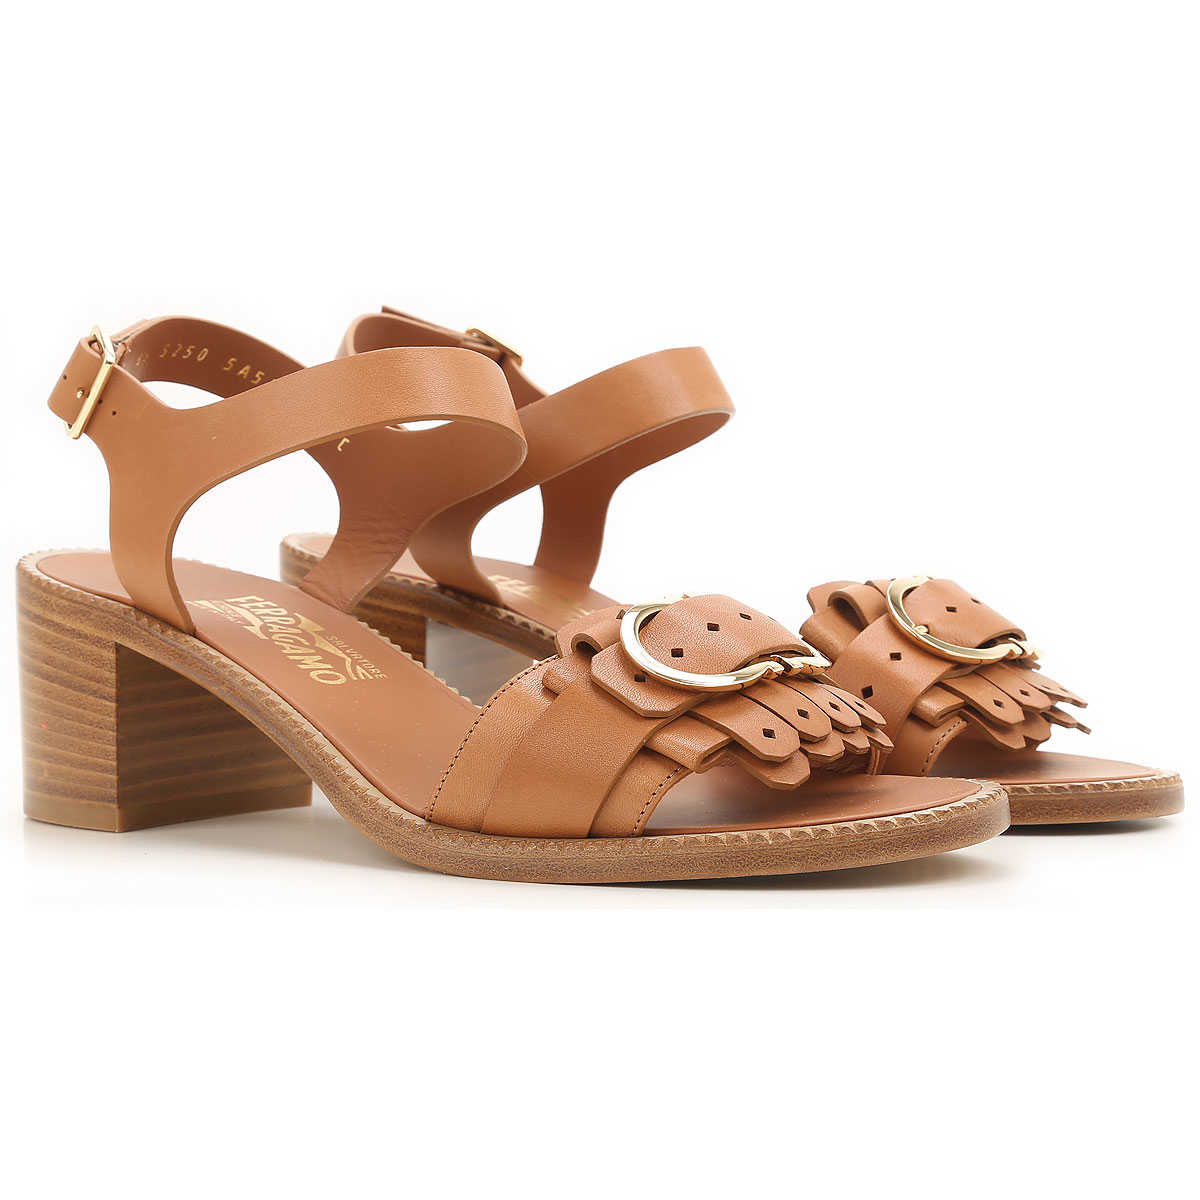 Salvatore Ferragamo Womens Shoes On Sale in Outlet